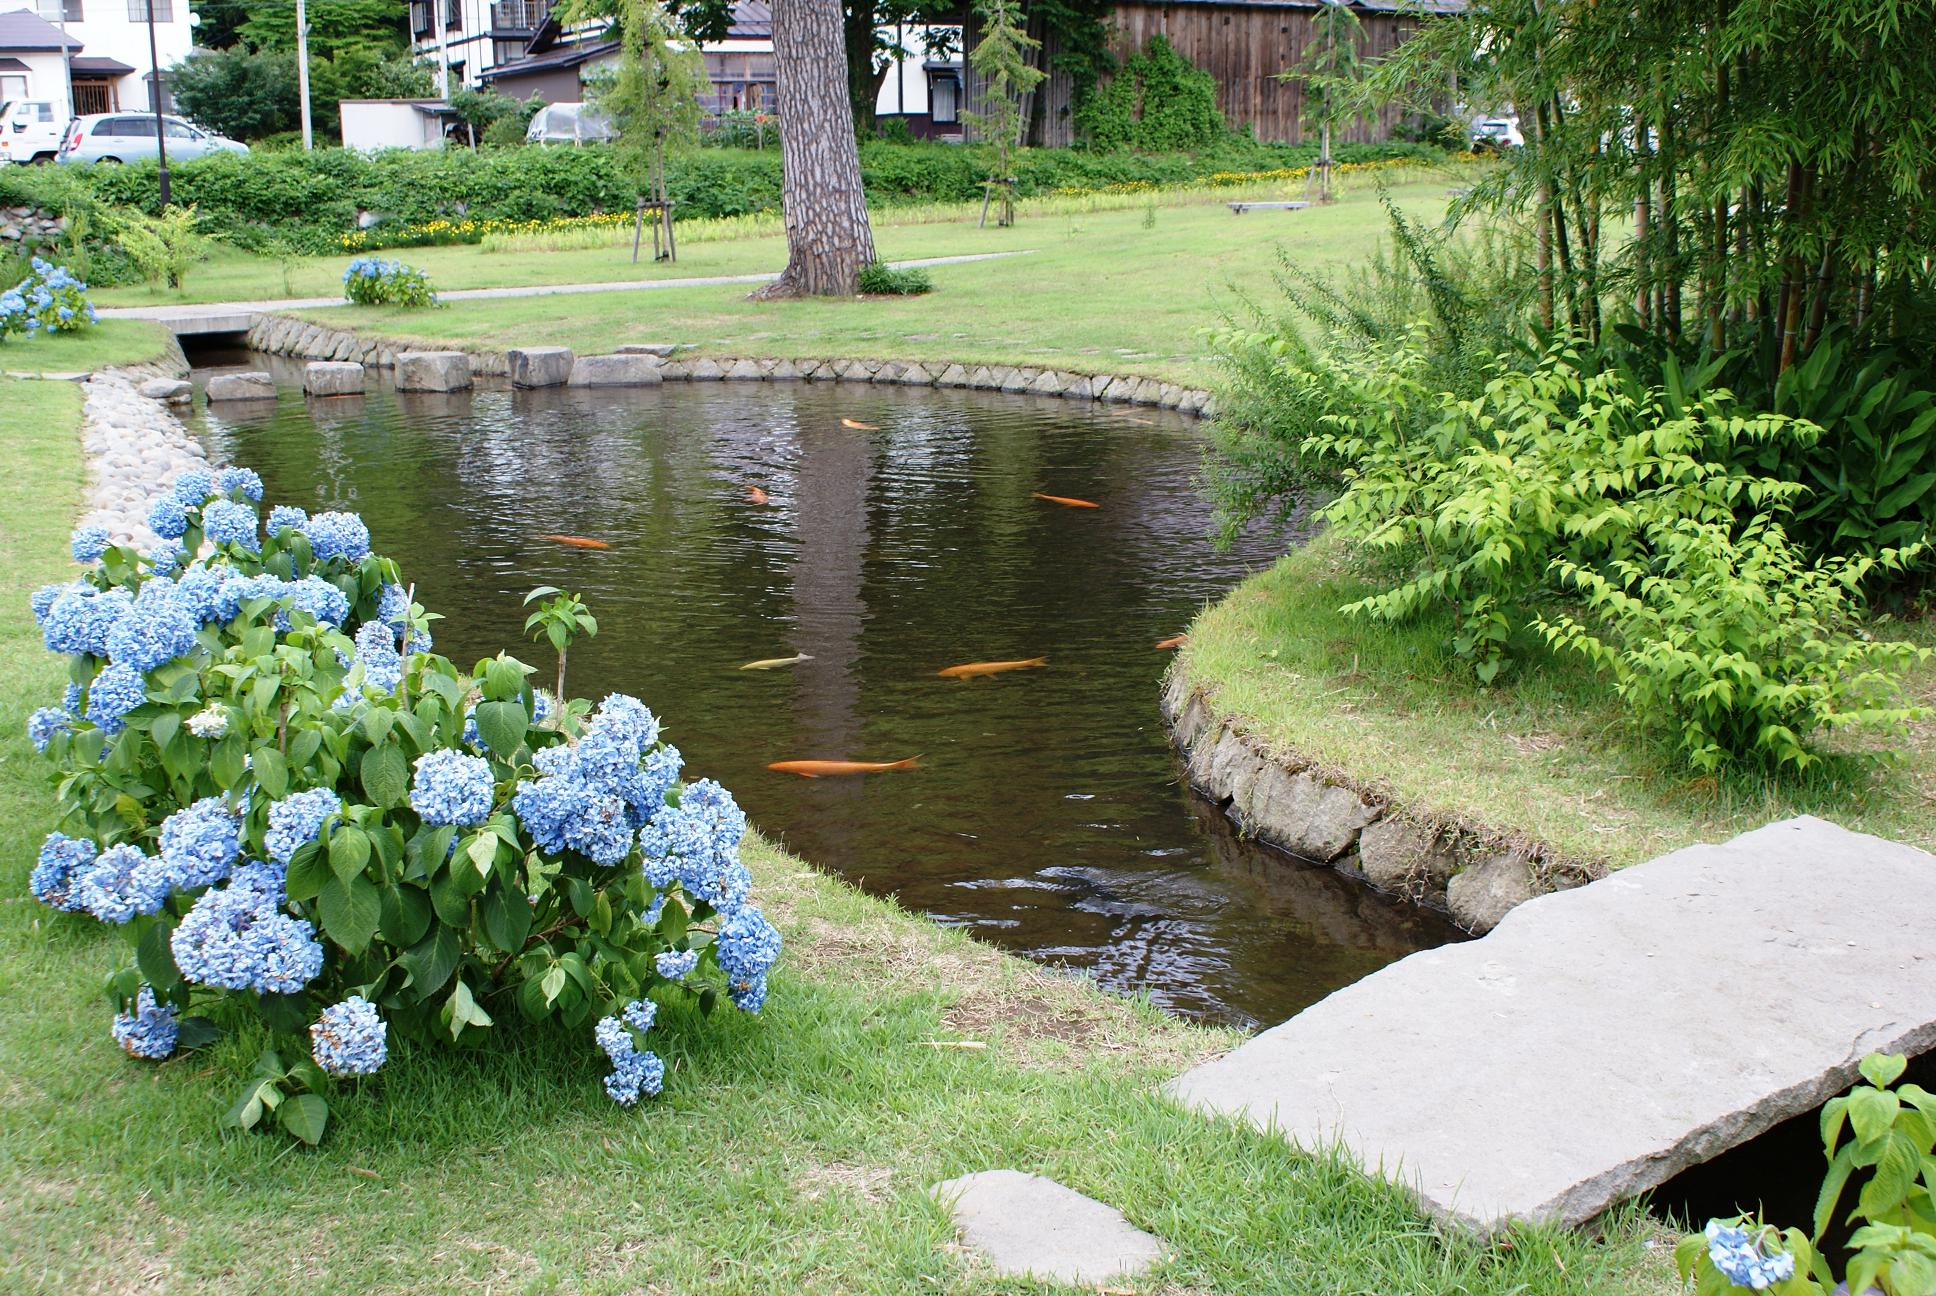 Backyard fish farming raise fish in your home pond for Garden pond design and construction